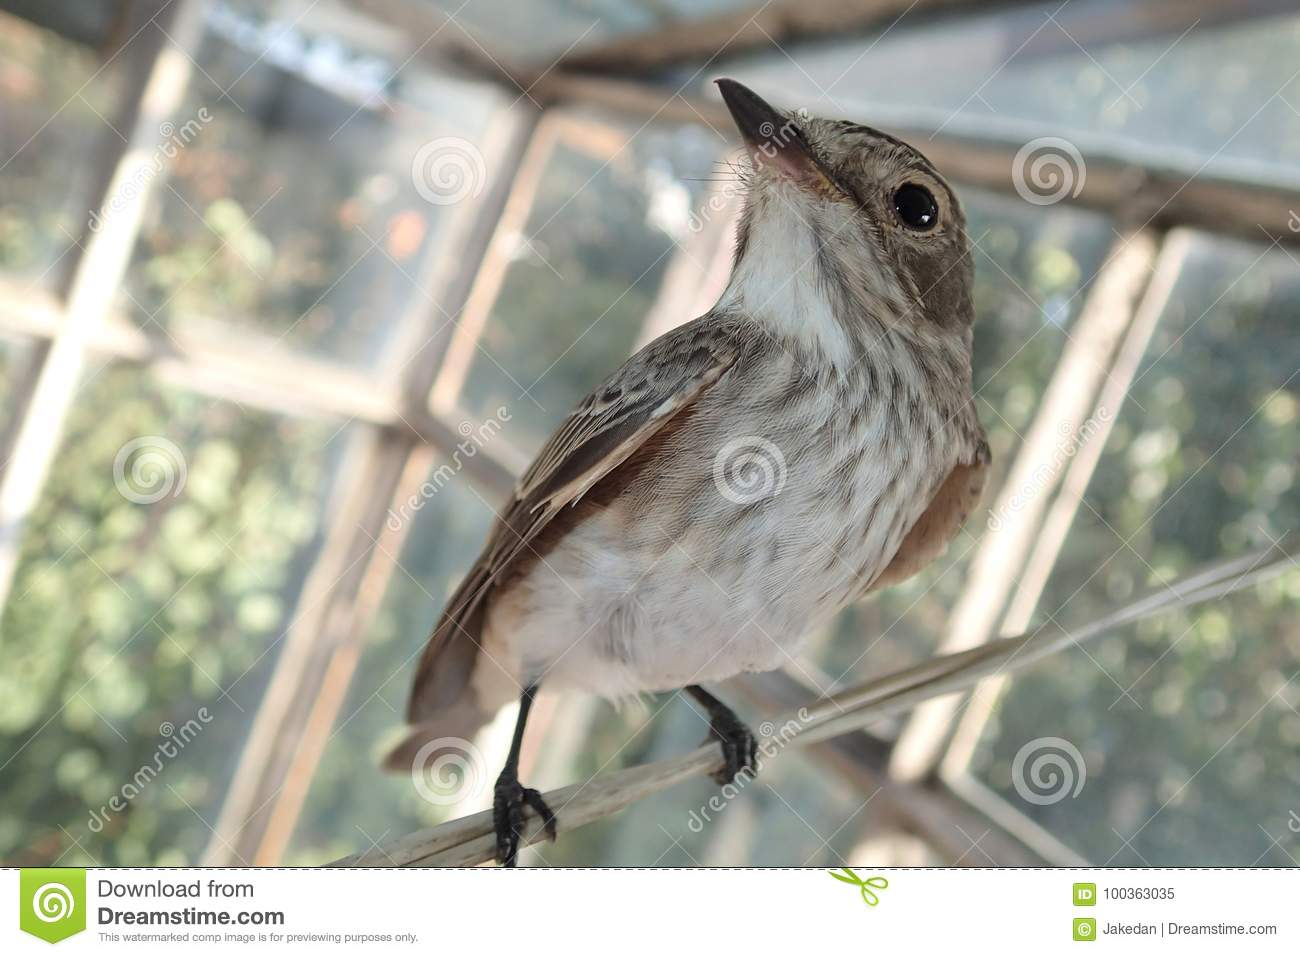 Bird on a laundry wire stock image  Image of wings, bird